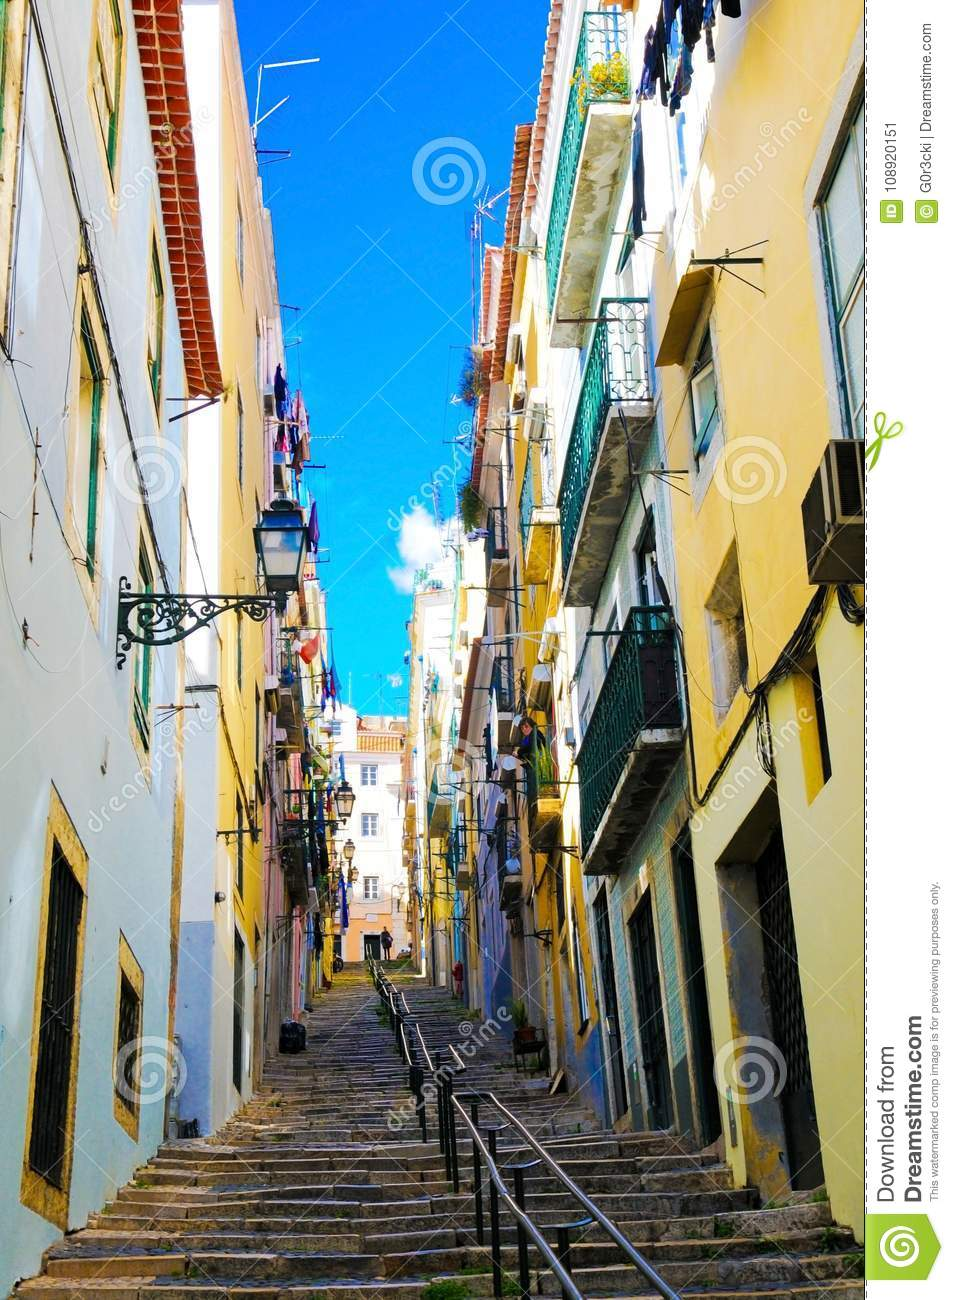 Lisbon Colorful Alley, Travel Portugal, Typical Oldtown